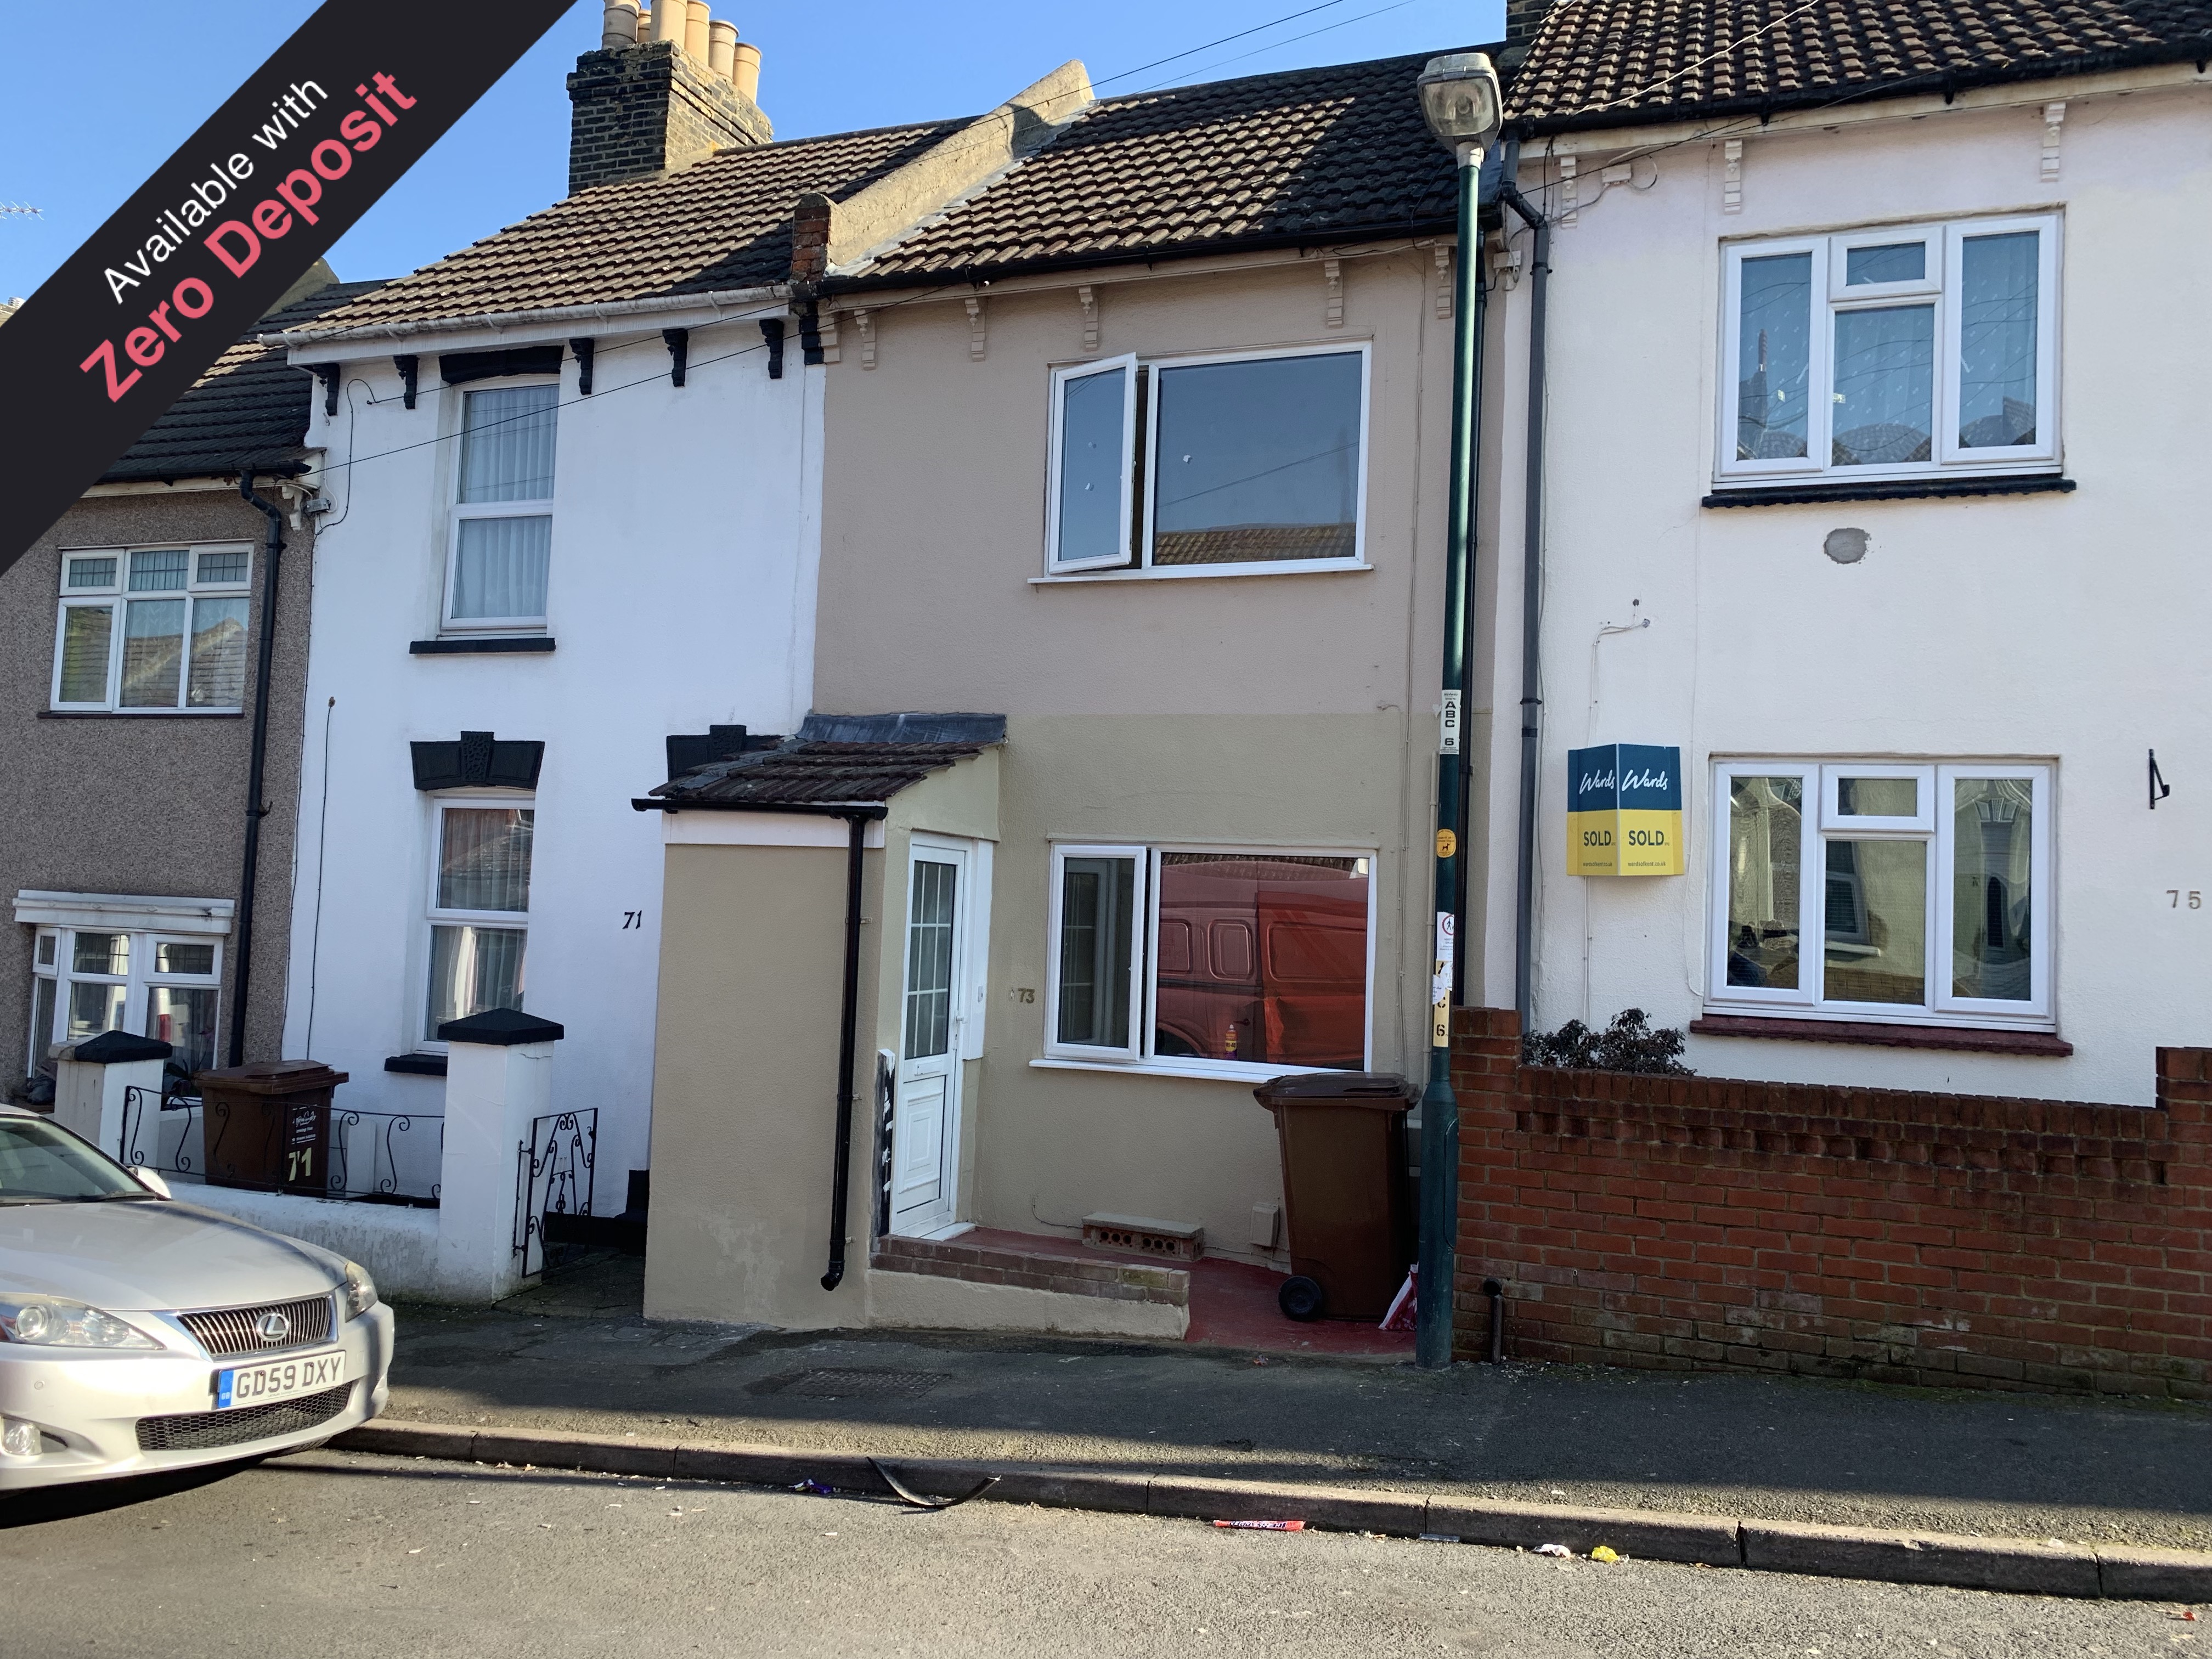 3 bed terraced house to rent in Albany Road, Chatham, ME4